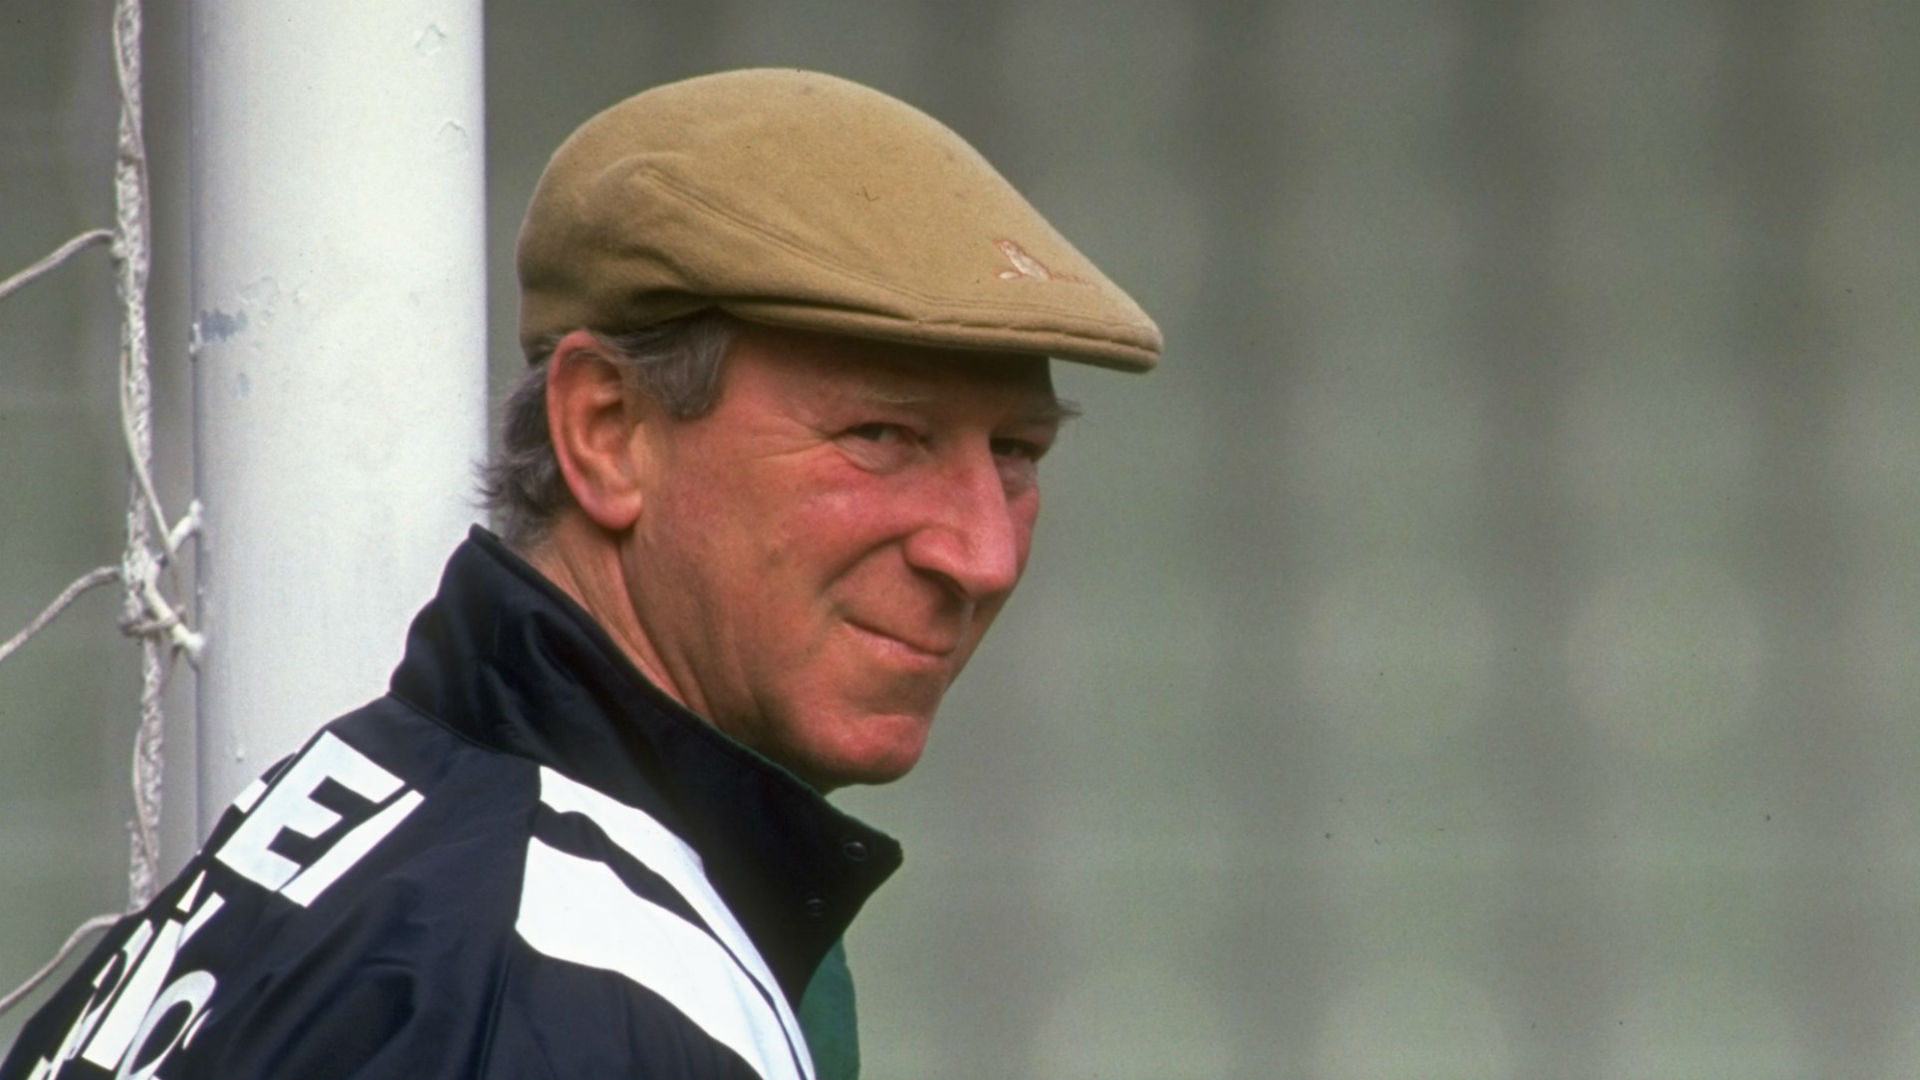 Football has lost 'one of the greats' – tributes pour in for Jack Charlton